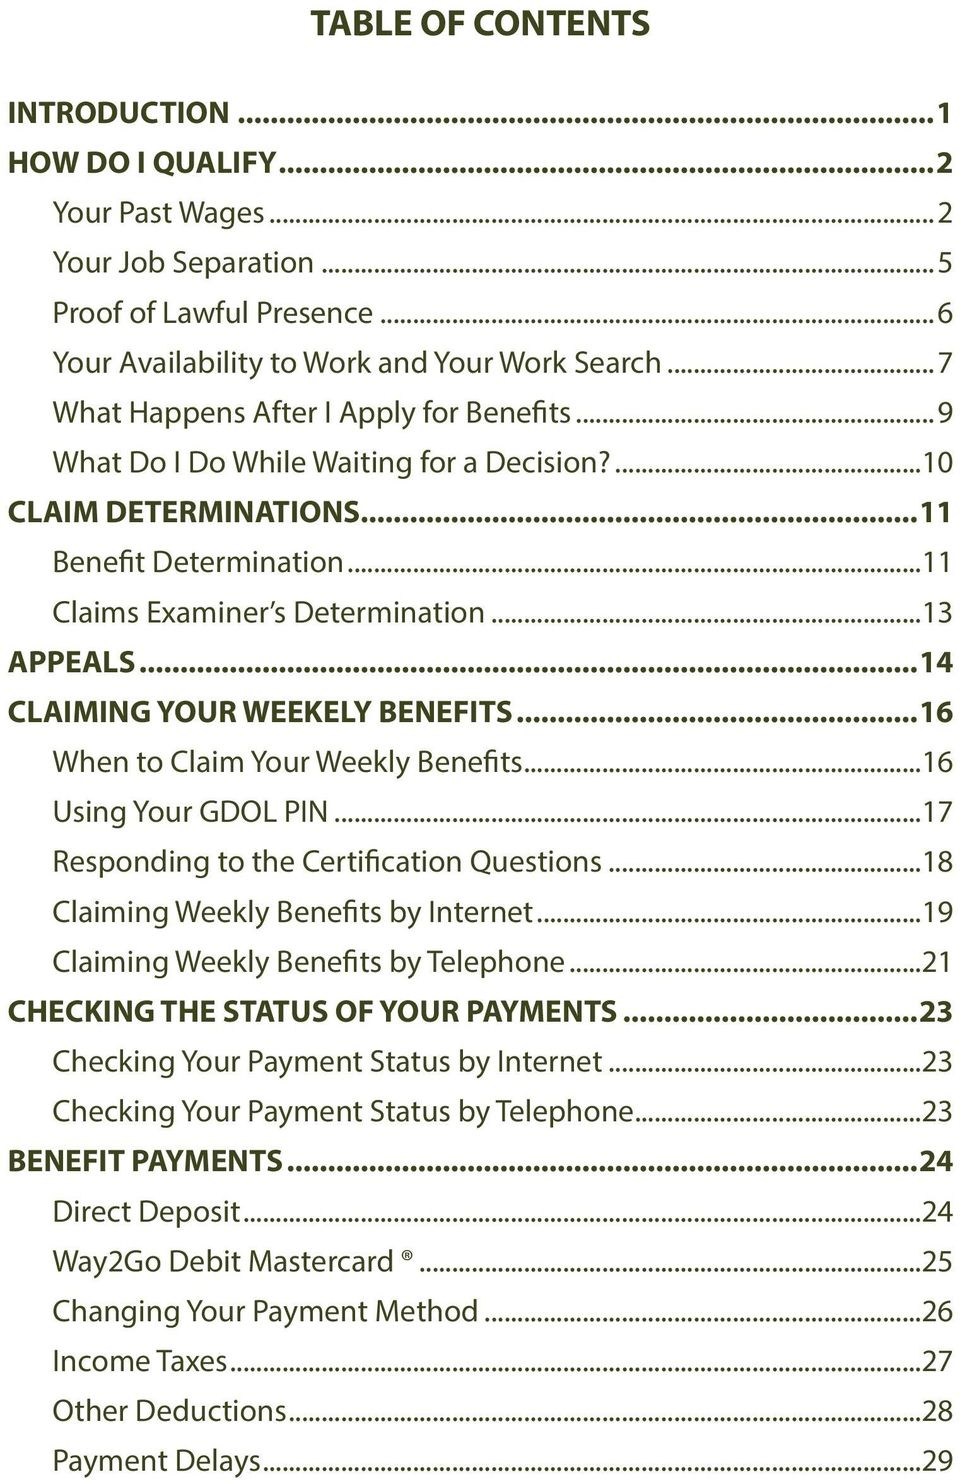 ..14 CLAIMING YOUR WEEKELY BENEFITS...16 When to Claim Your Weekly Benefits...16 Using Your GDOL PIN...17 Responding to the Certification Questions...18 Claiming Weekly Benefits by Internet.